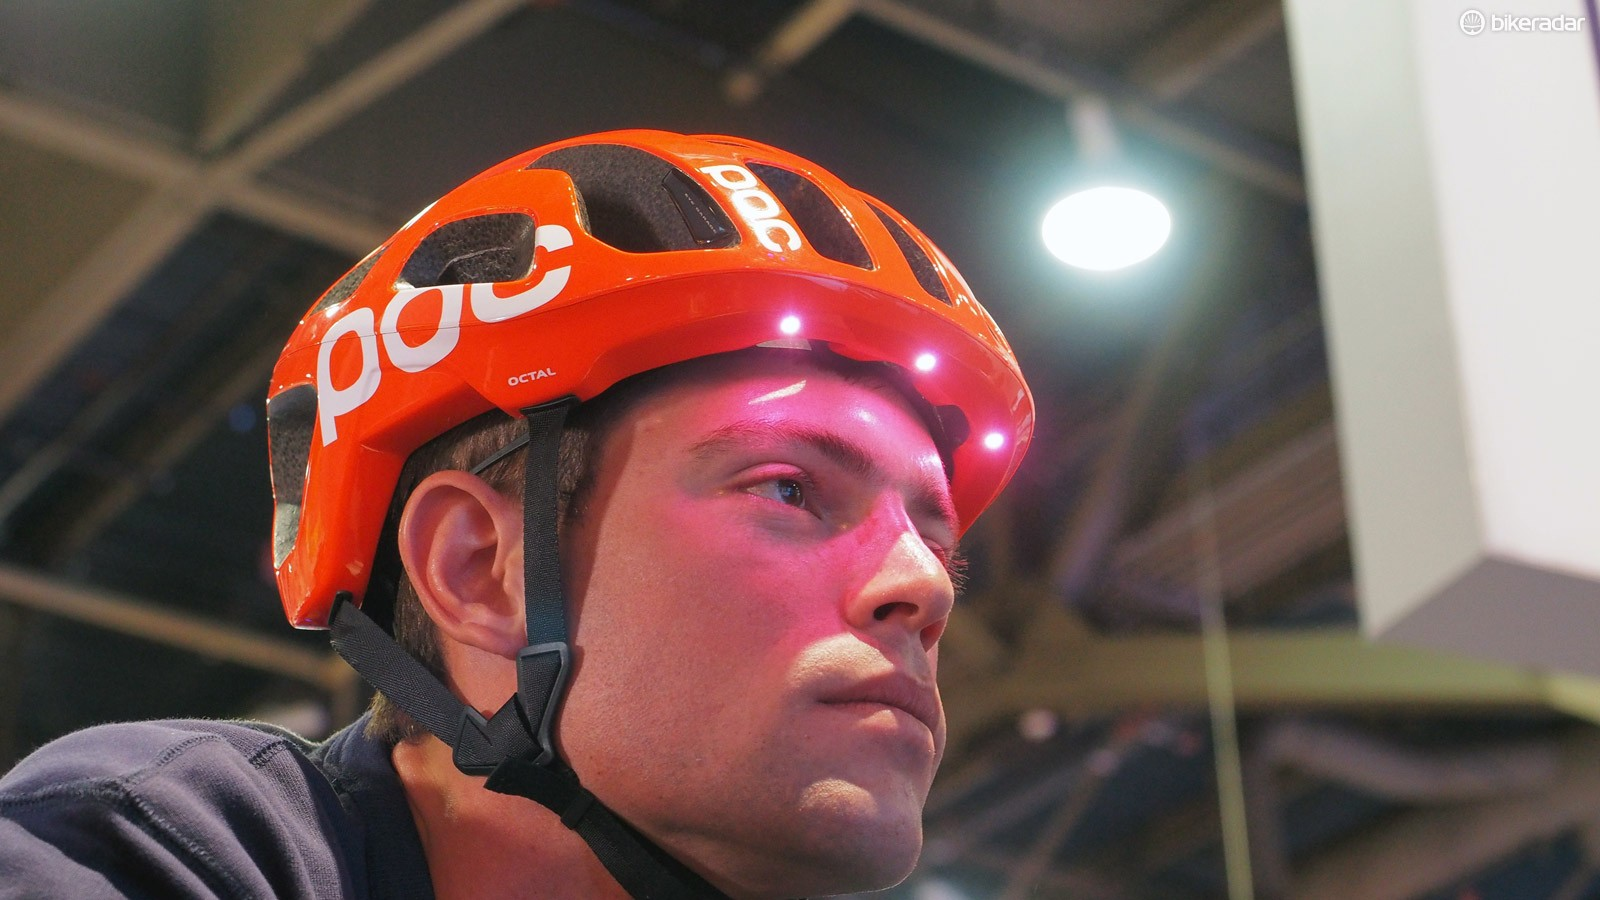 For the cyclist, embedded LEDs and vibration pads inside the specially equipped helmet would warn of an impending collision, such as from hidden cross street traffic